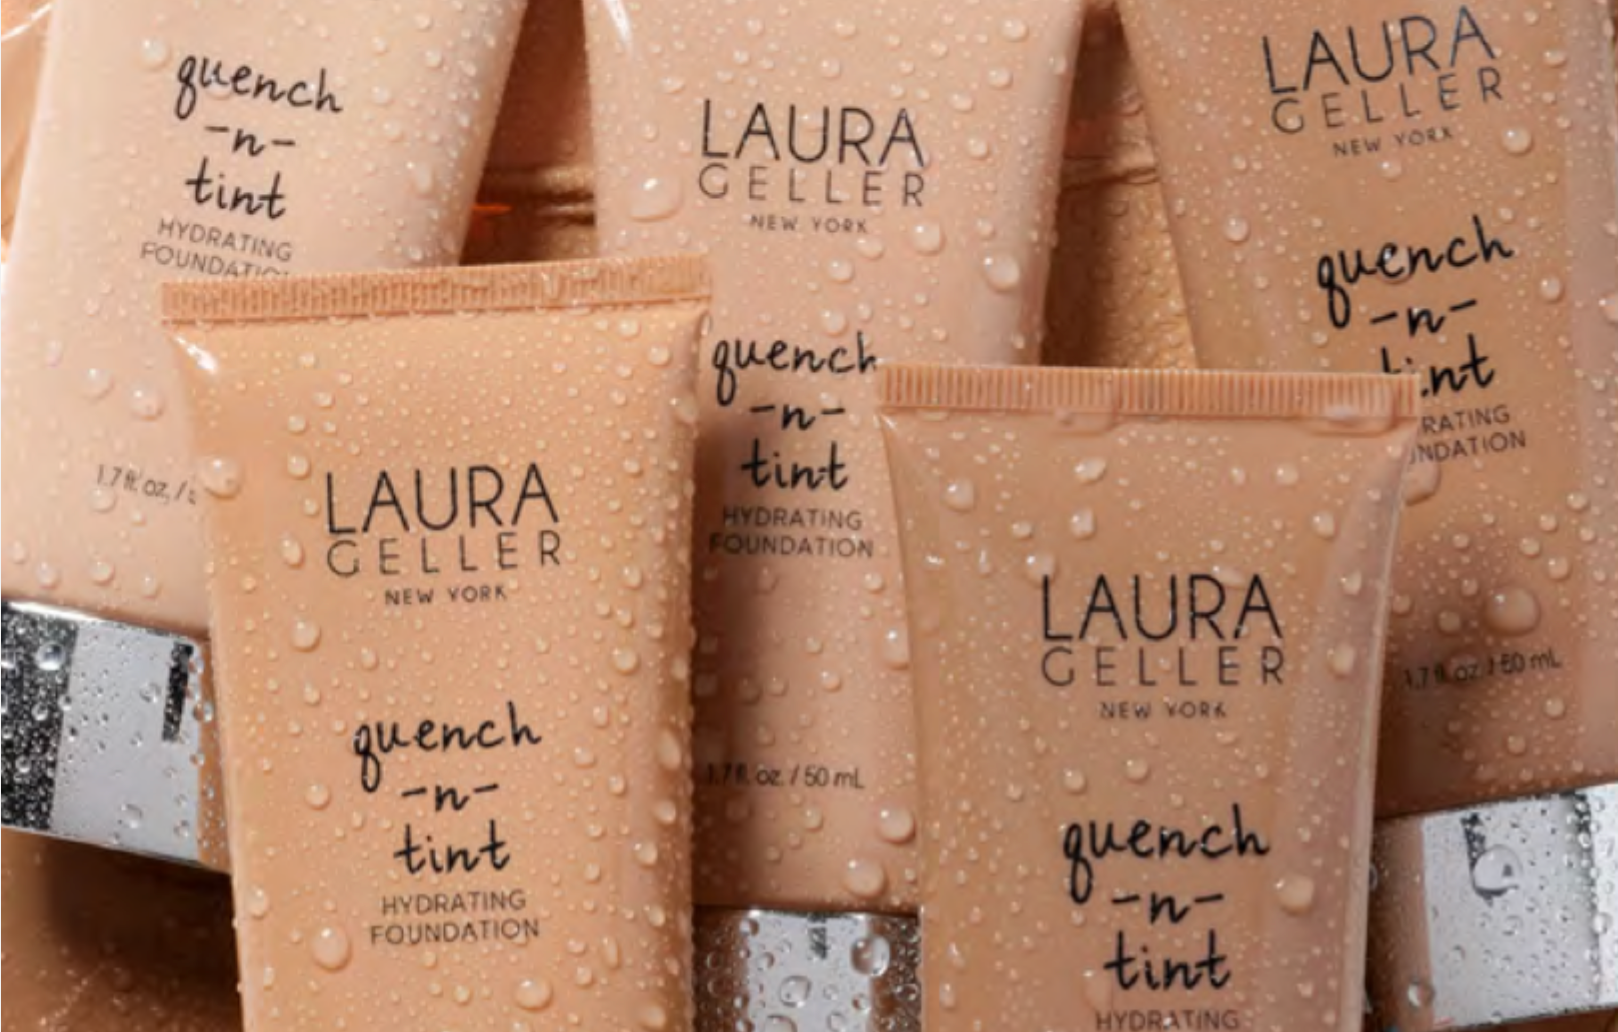 Laura Geller's quench-n-tint Product Image